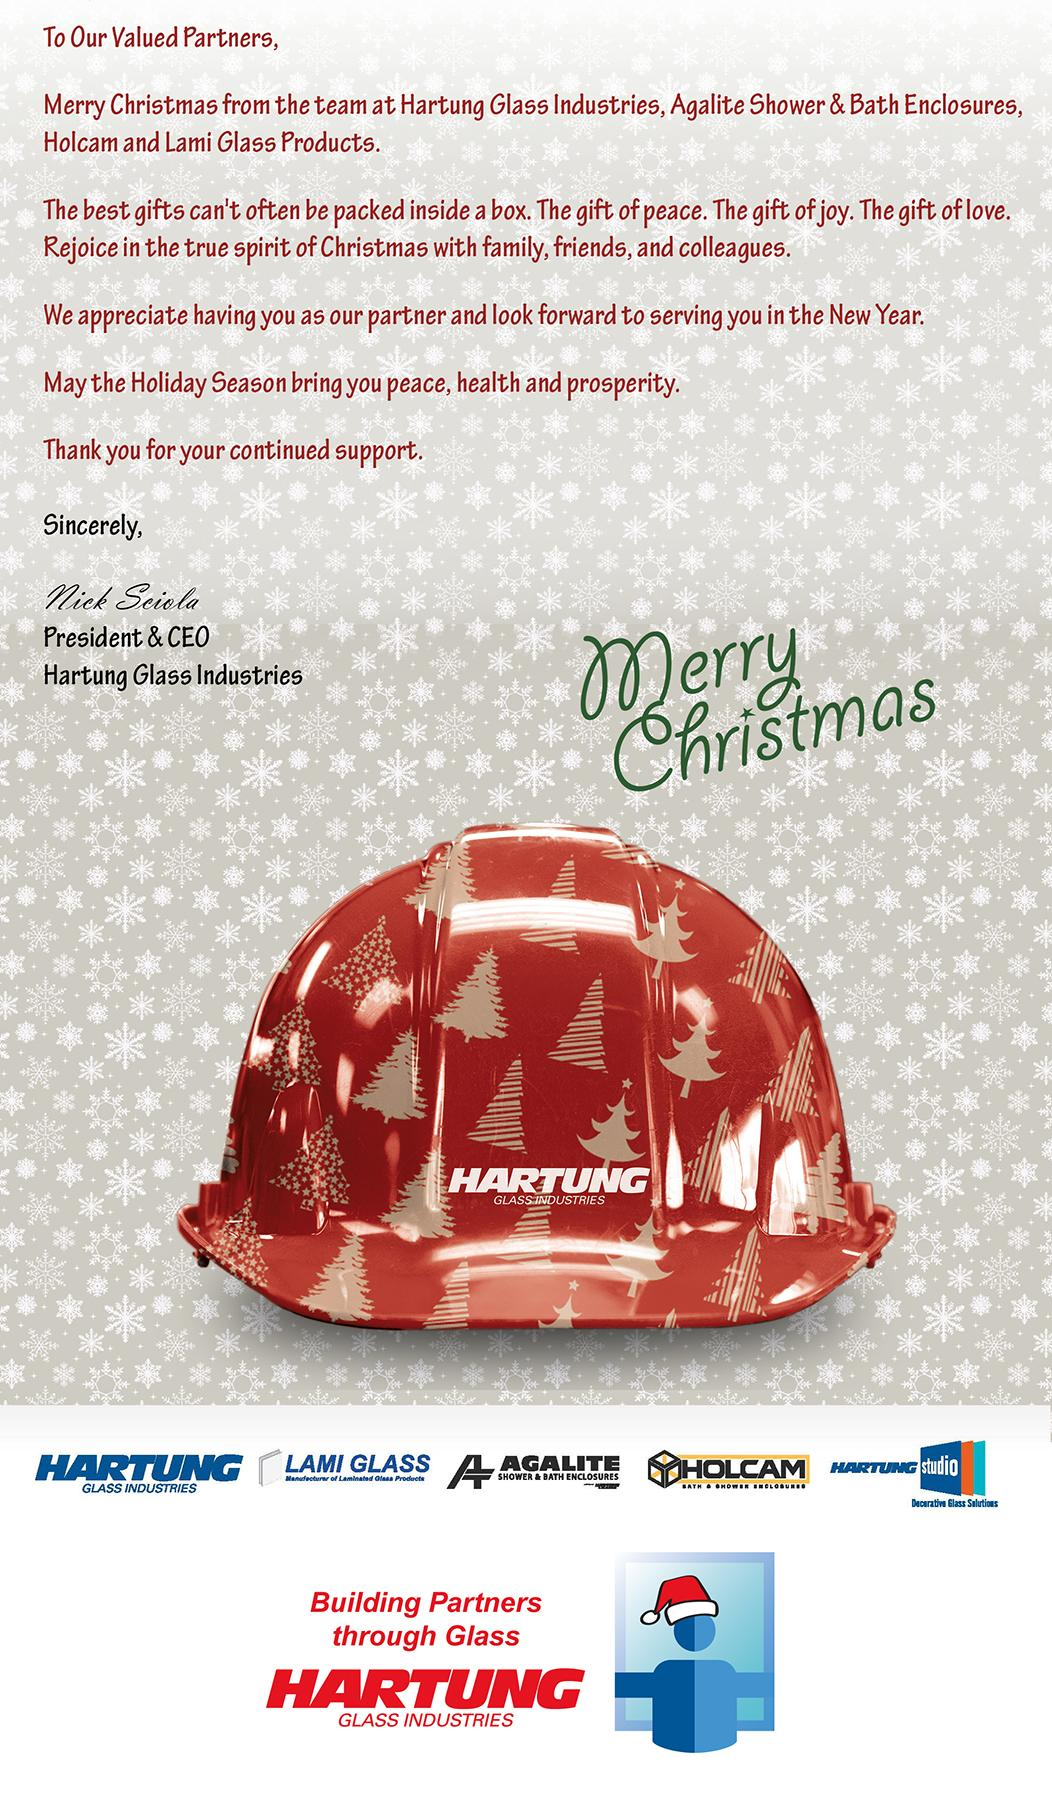 Merry Christmas from Hartung Glass Industries